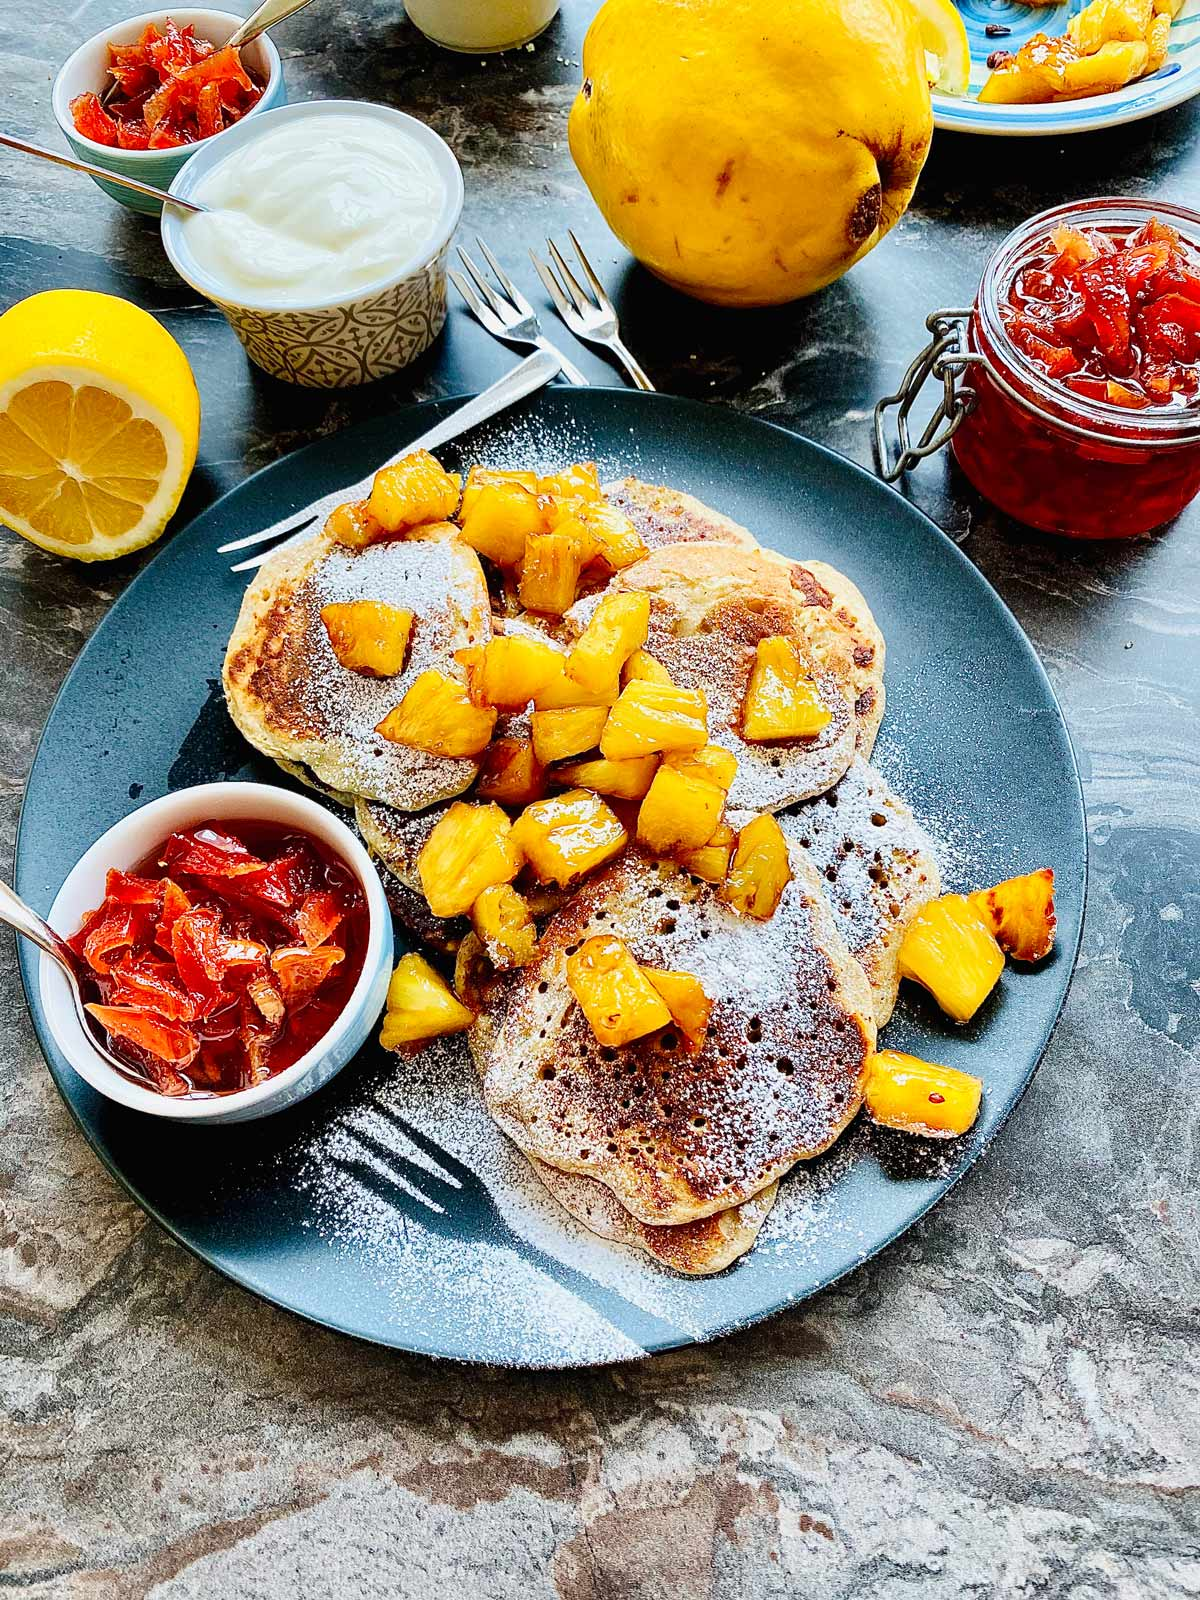 ricotta pancakes topped with chopped pineapple and a small serving dish with jam on a black plate